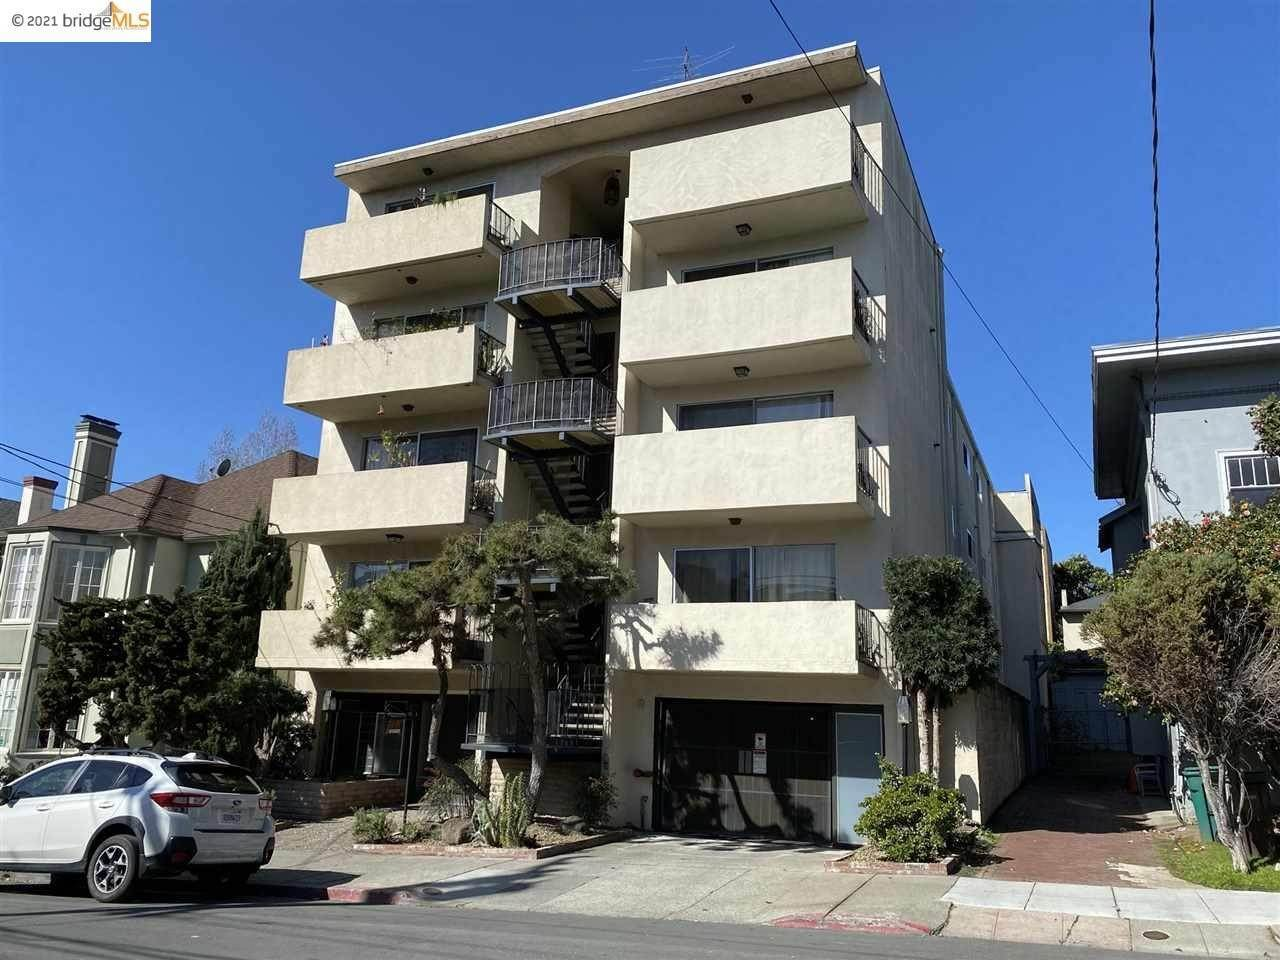 Multi-Family Homes for Sale at 411 Euclid Avenue Oakland, California 94610 United States